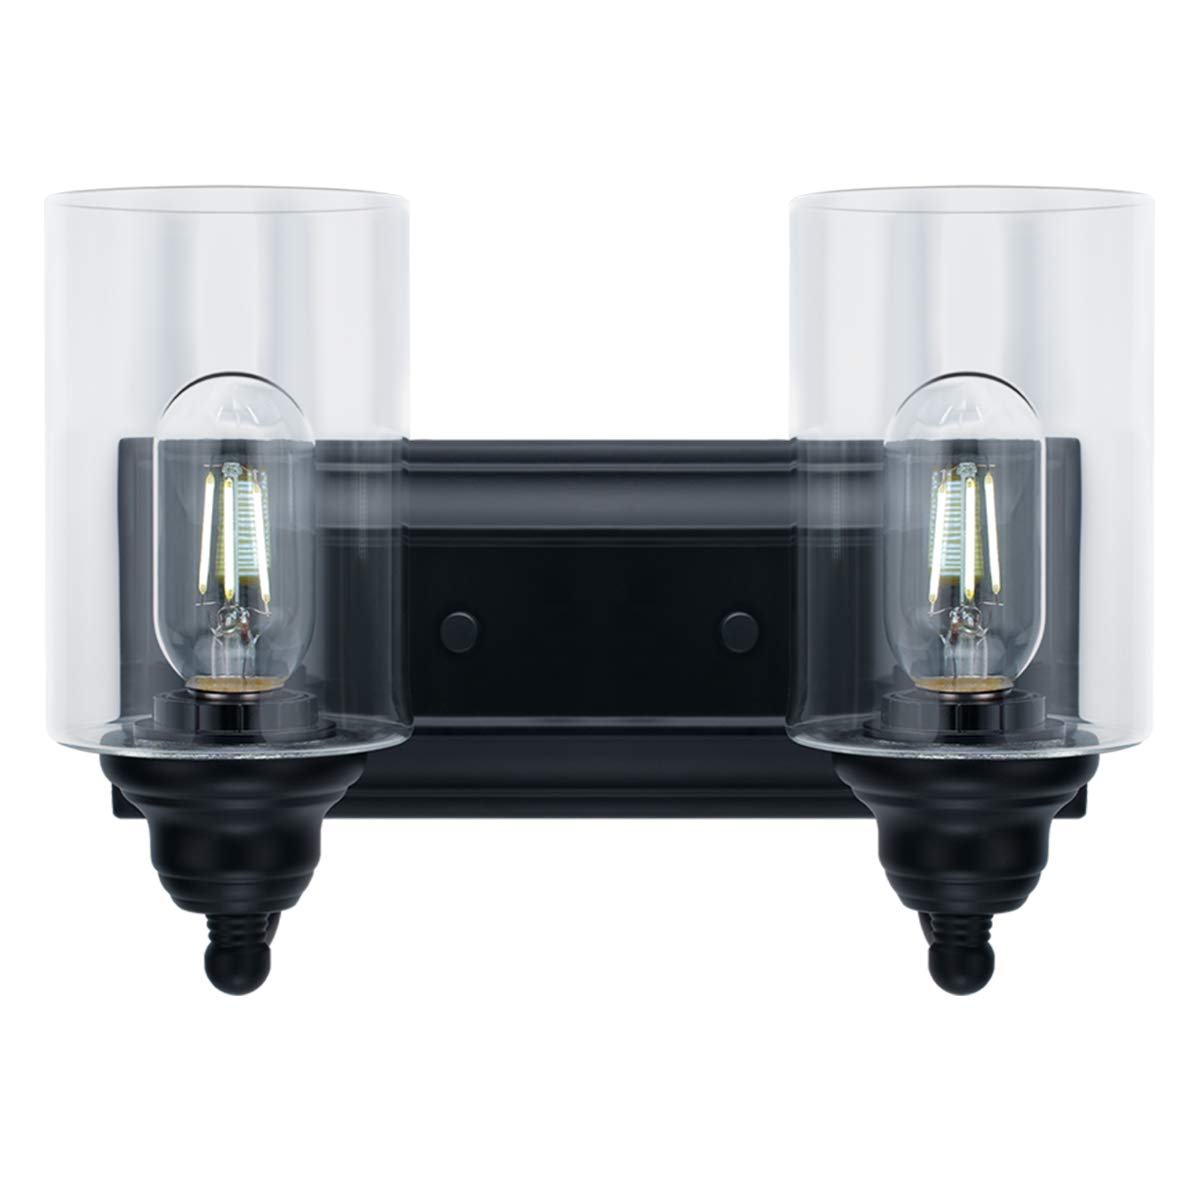 2-Light Vanity Light Fixture Modern Clear Glass Shades Lighting Black Dining Room Lighting Fixtures